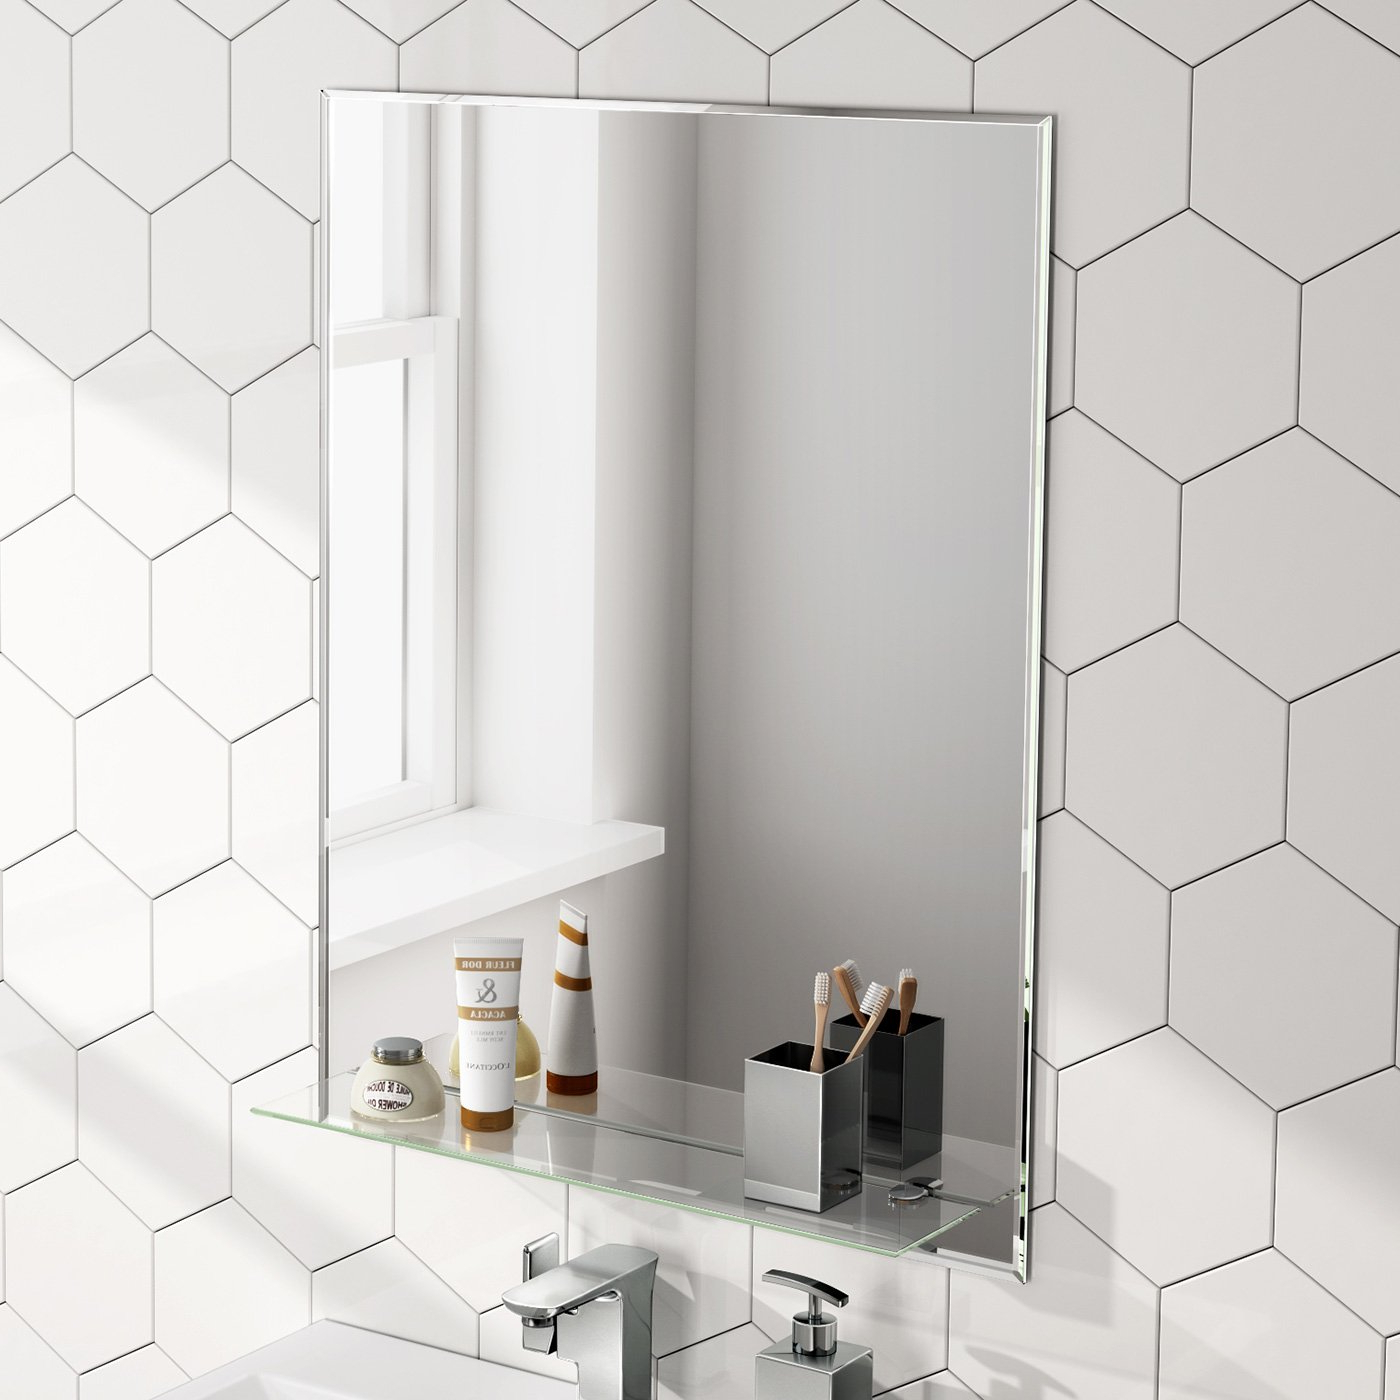 Most Recently Released Bath Wall Mirrors Throughout 600 X 800 Mm Designer Bathroom Wall Mirror + Glass Shelf Mc (View 7 of 20)